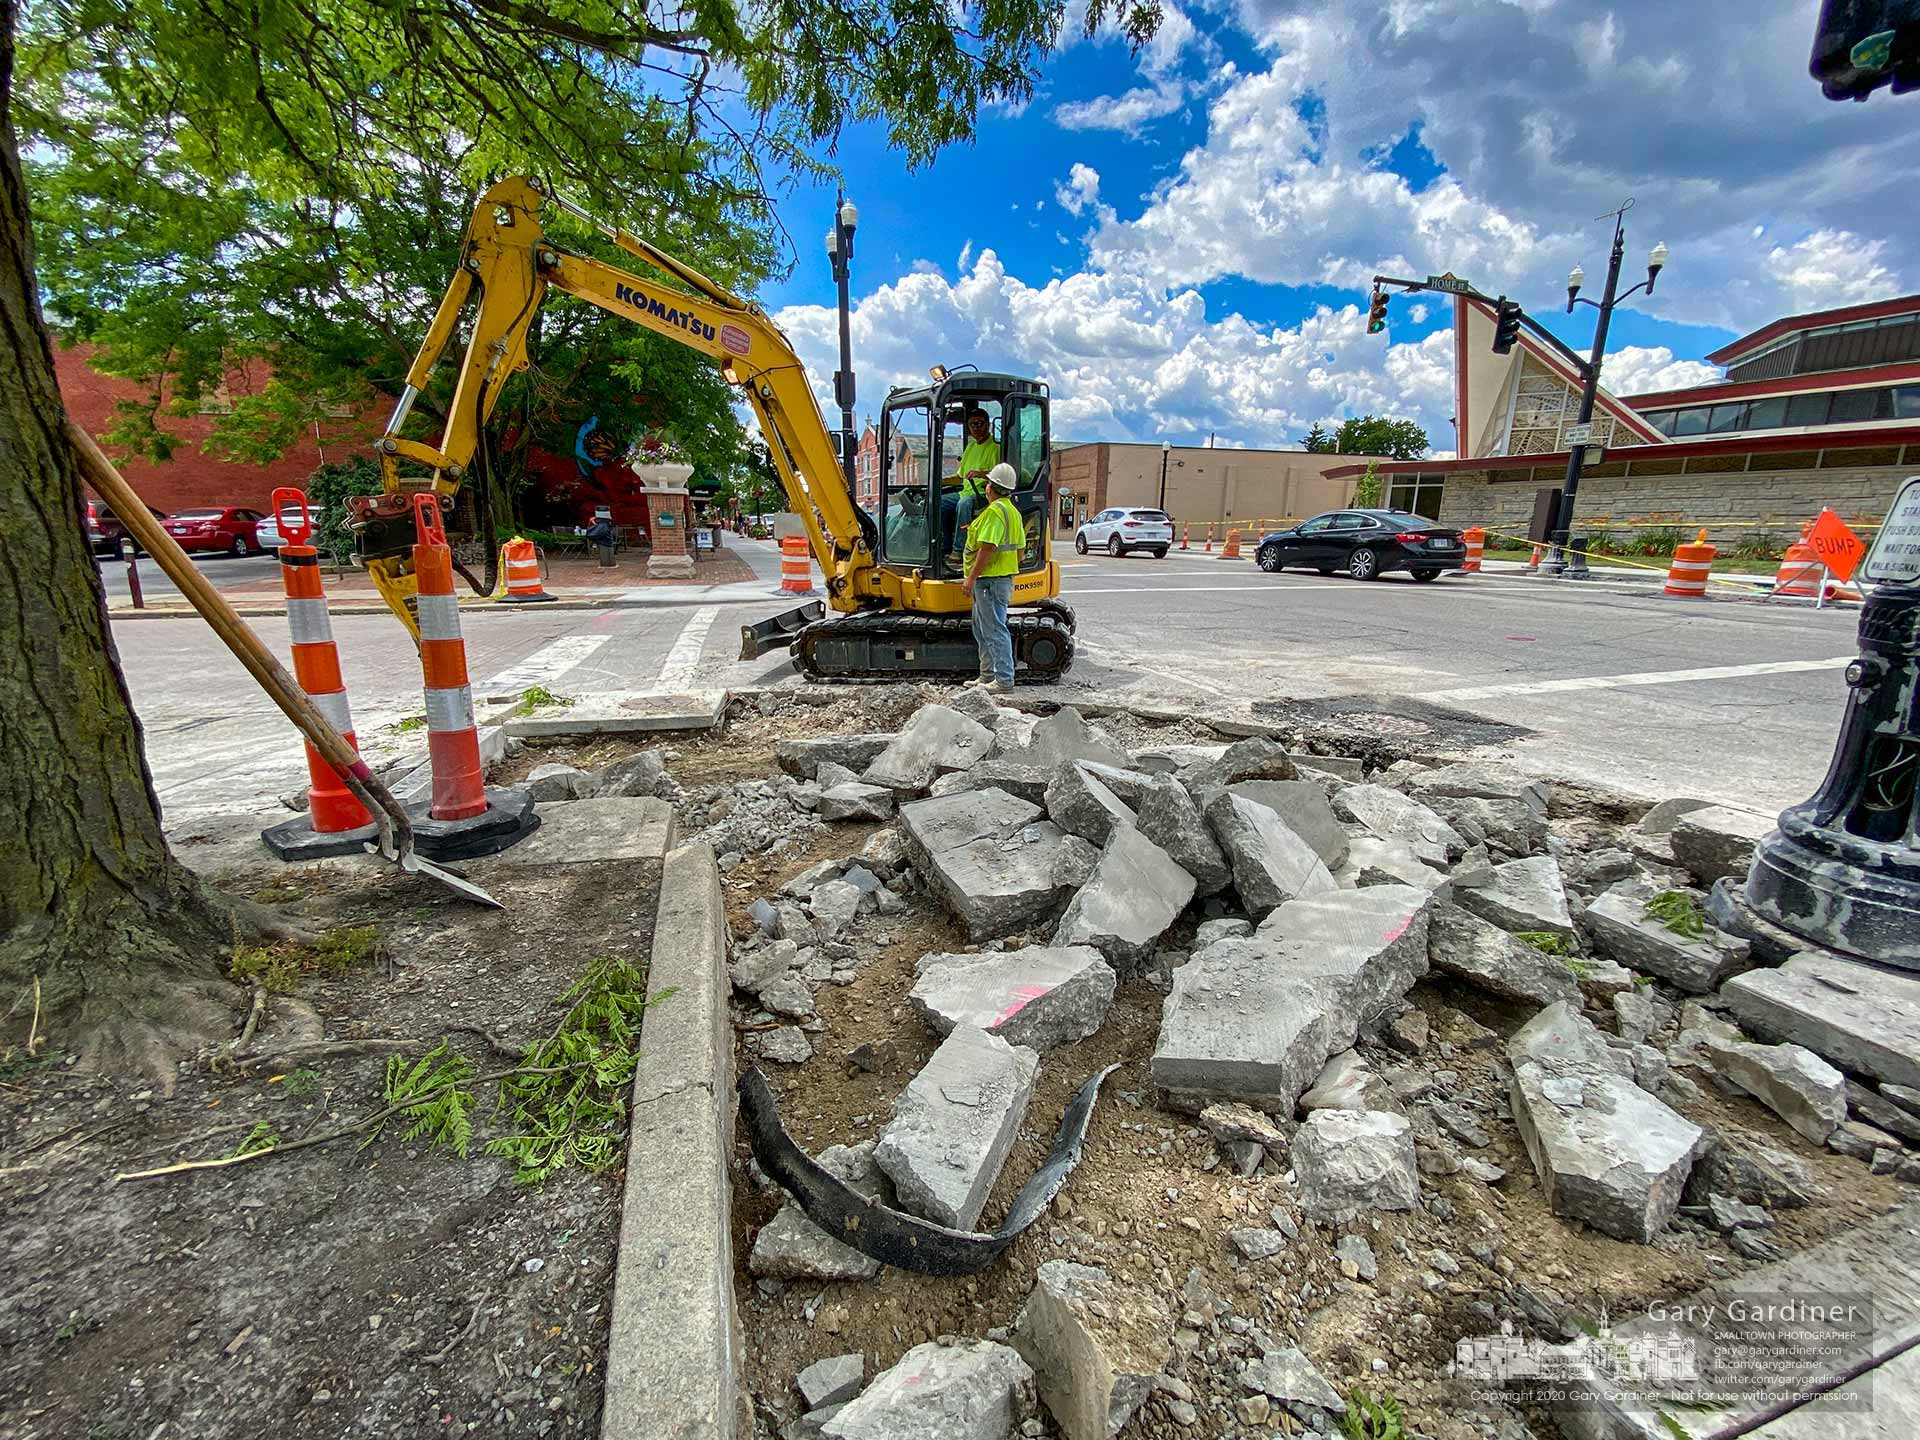 A crew removes a section of recently poured sidewalk at Home and State after the drew said it failed inspection for the correct slope to meet the new paving surface in the intersection. My Final Photo for June 25, 2020.